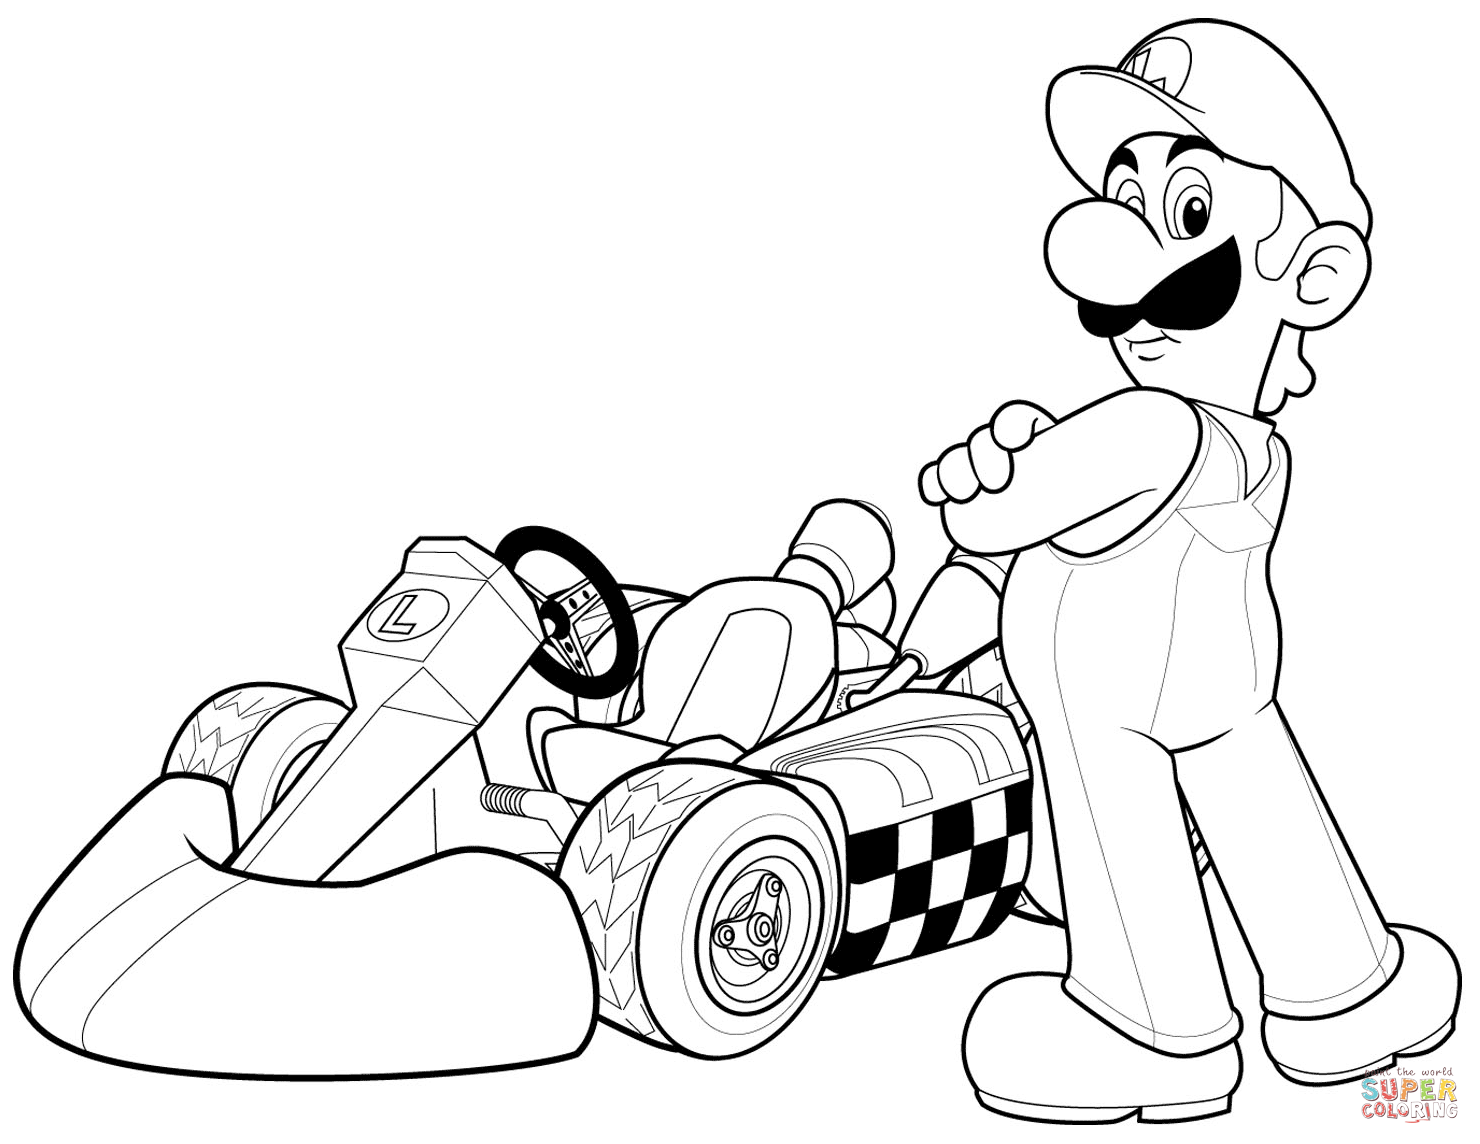 Luigi In Mario Kart Wii Super Coloring Super Mario Coloring Pages Mario Coloring Pages Coloring Pages